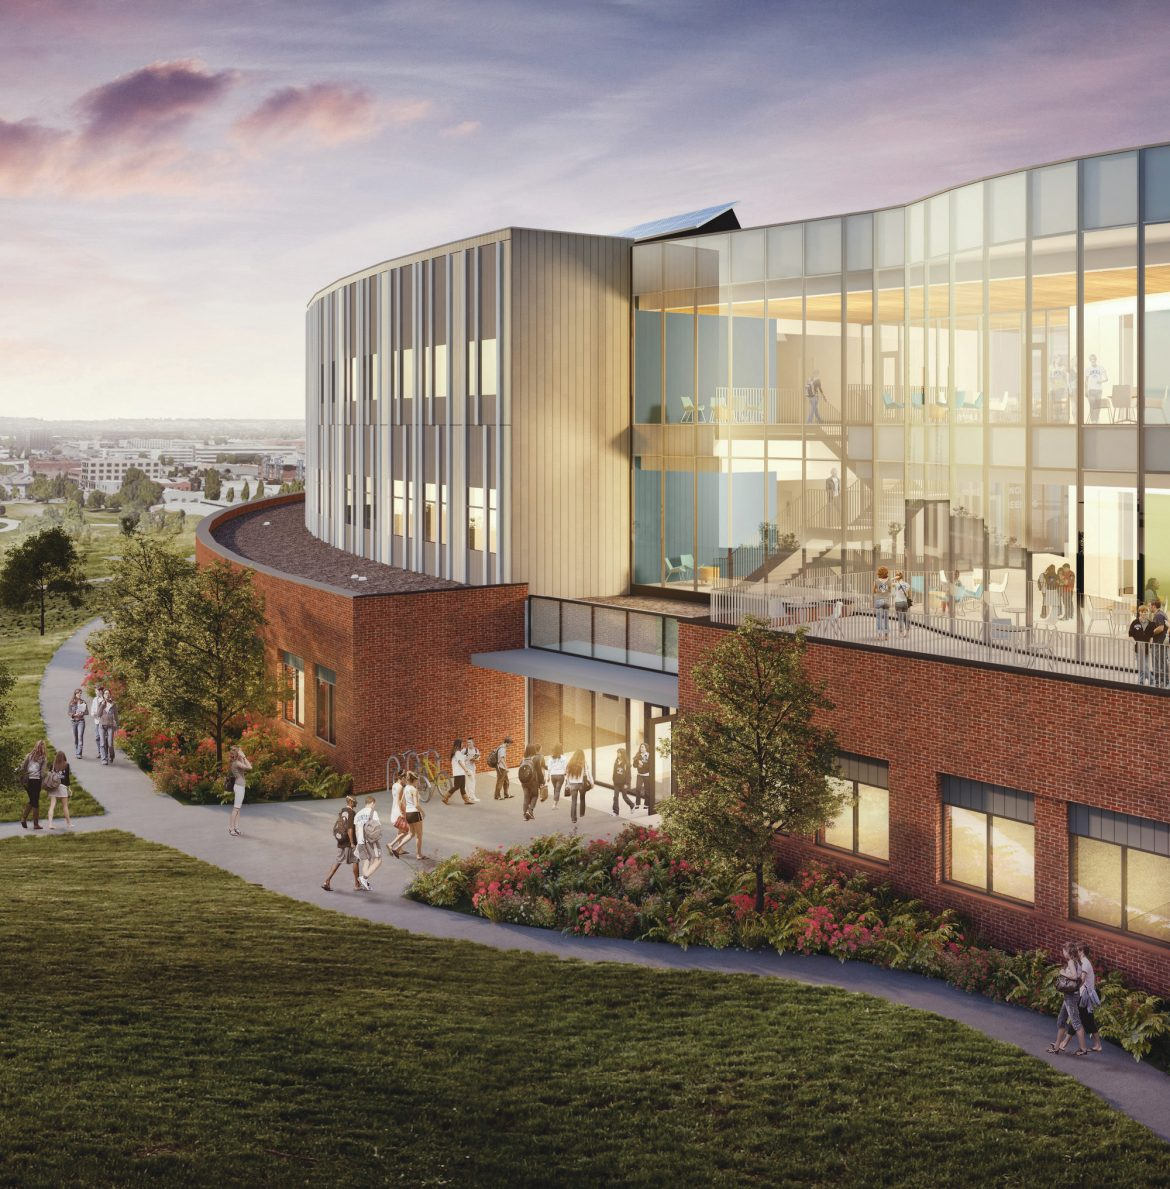 Gonzaga's John and Joan Bollier Family Center for Integrated Science and Engineering